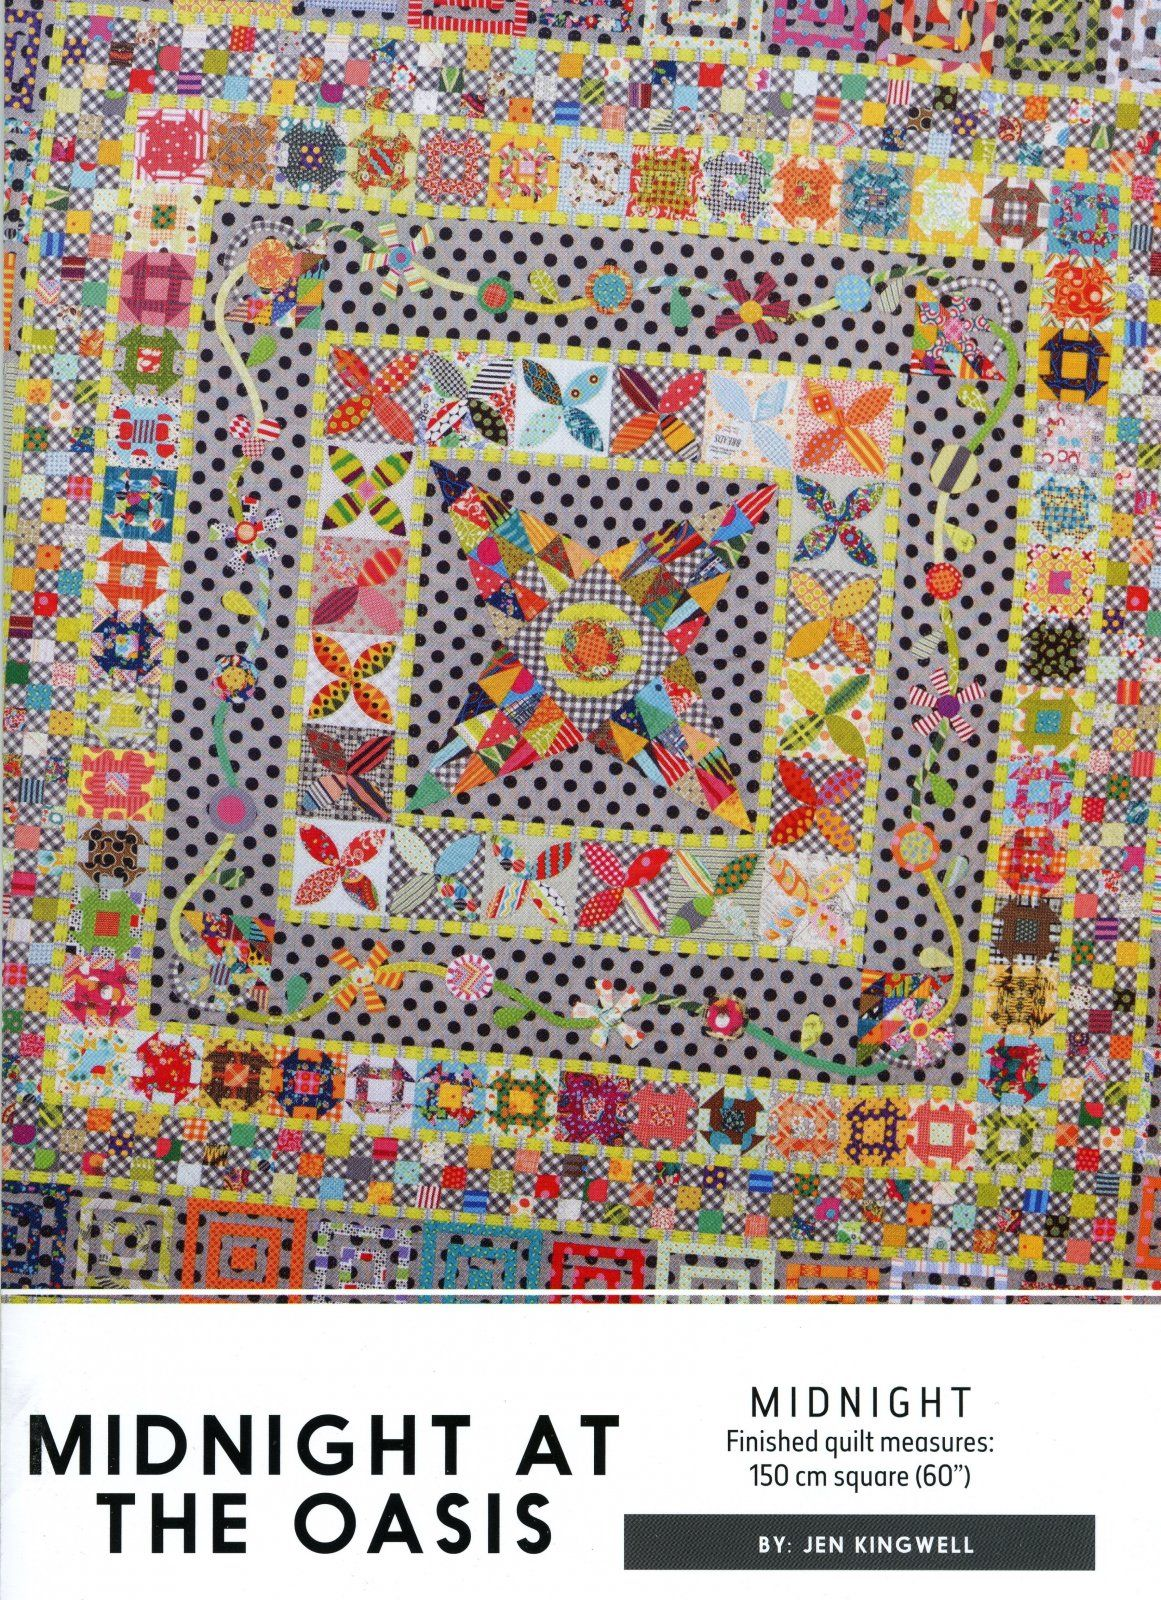 Midnight at the Oasis by Jen Kingwell Designs | Jen Kingwell ... : quilts by jen - Adamdwight.com